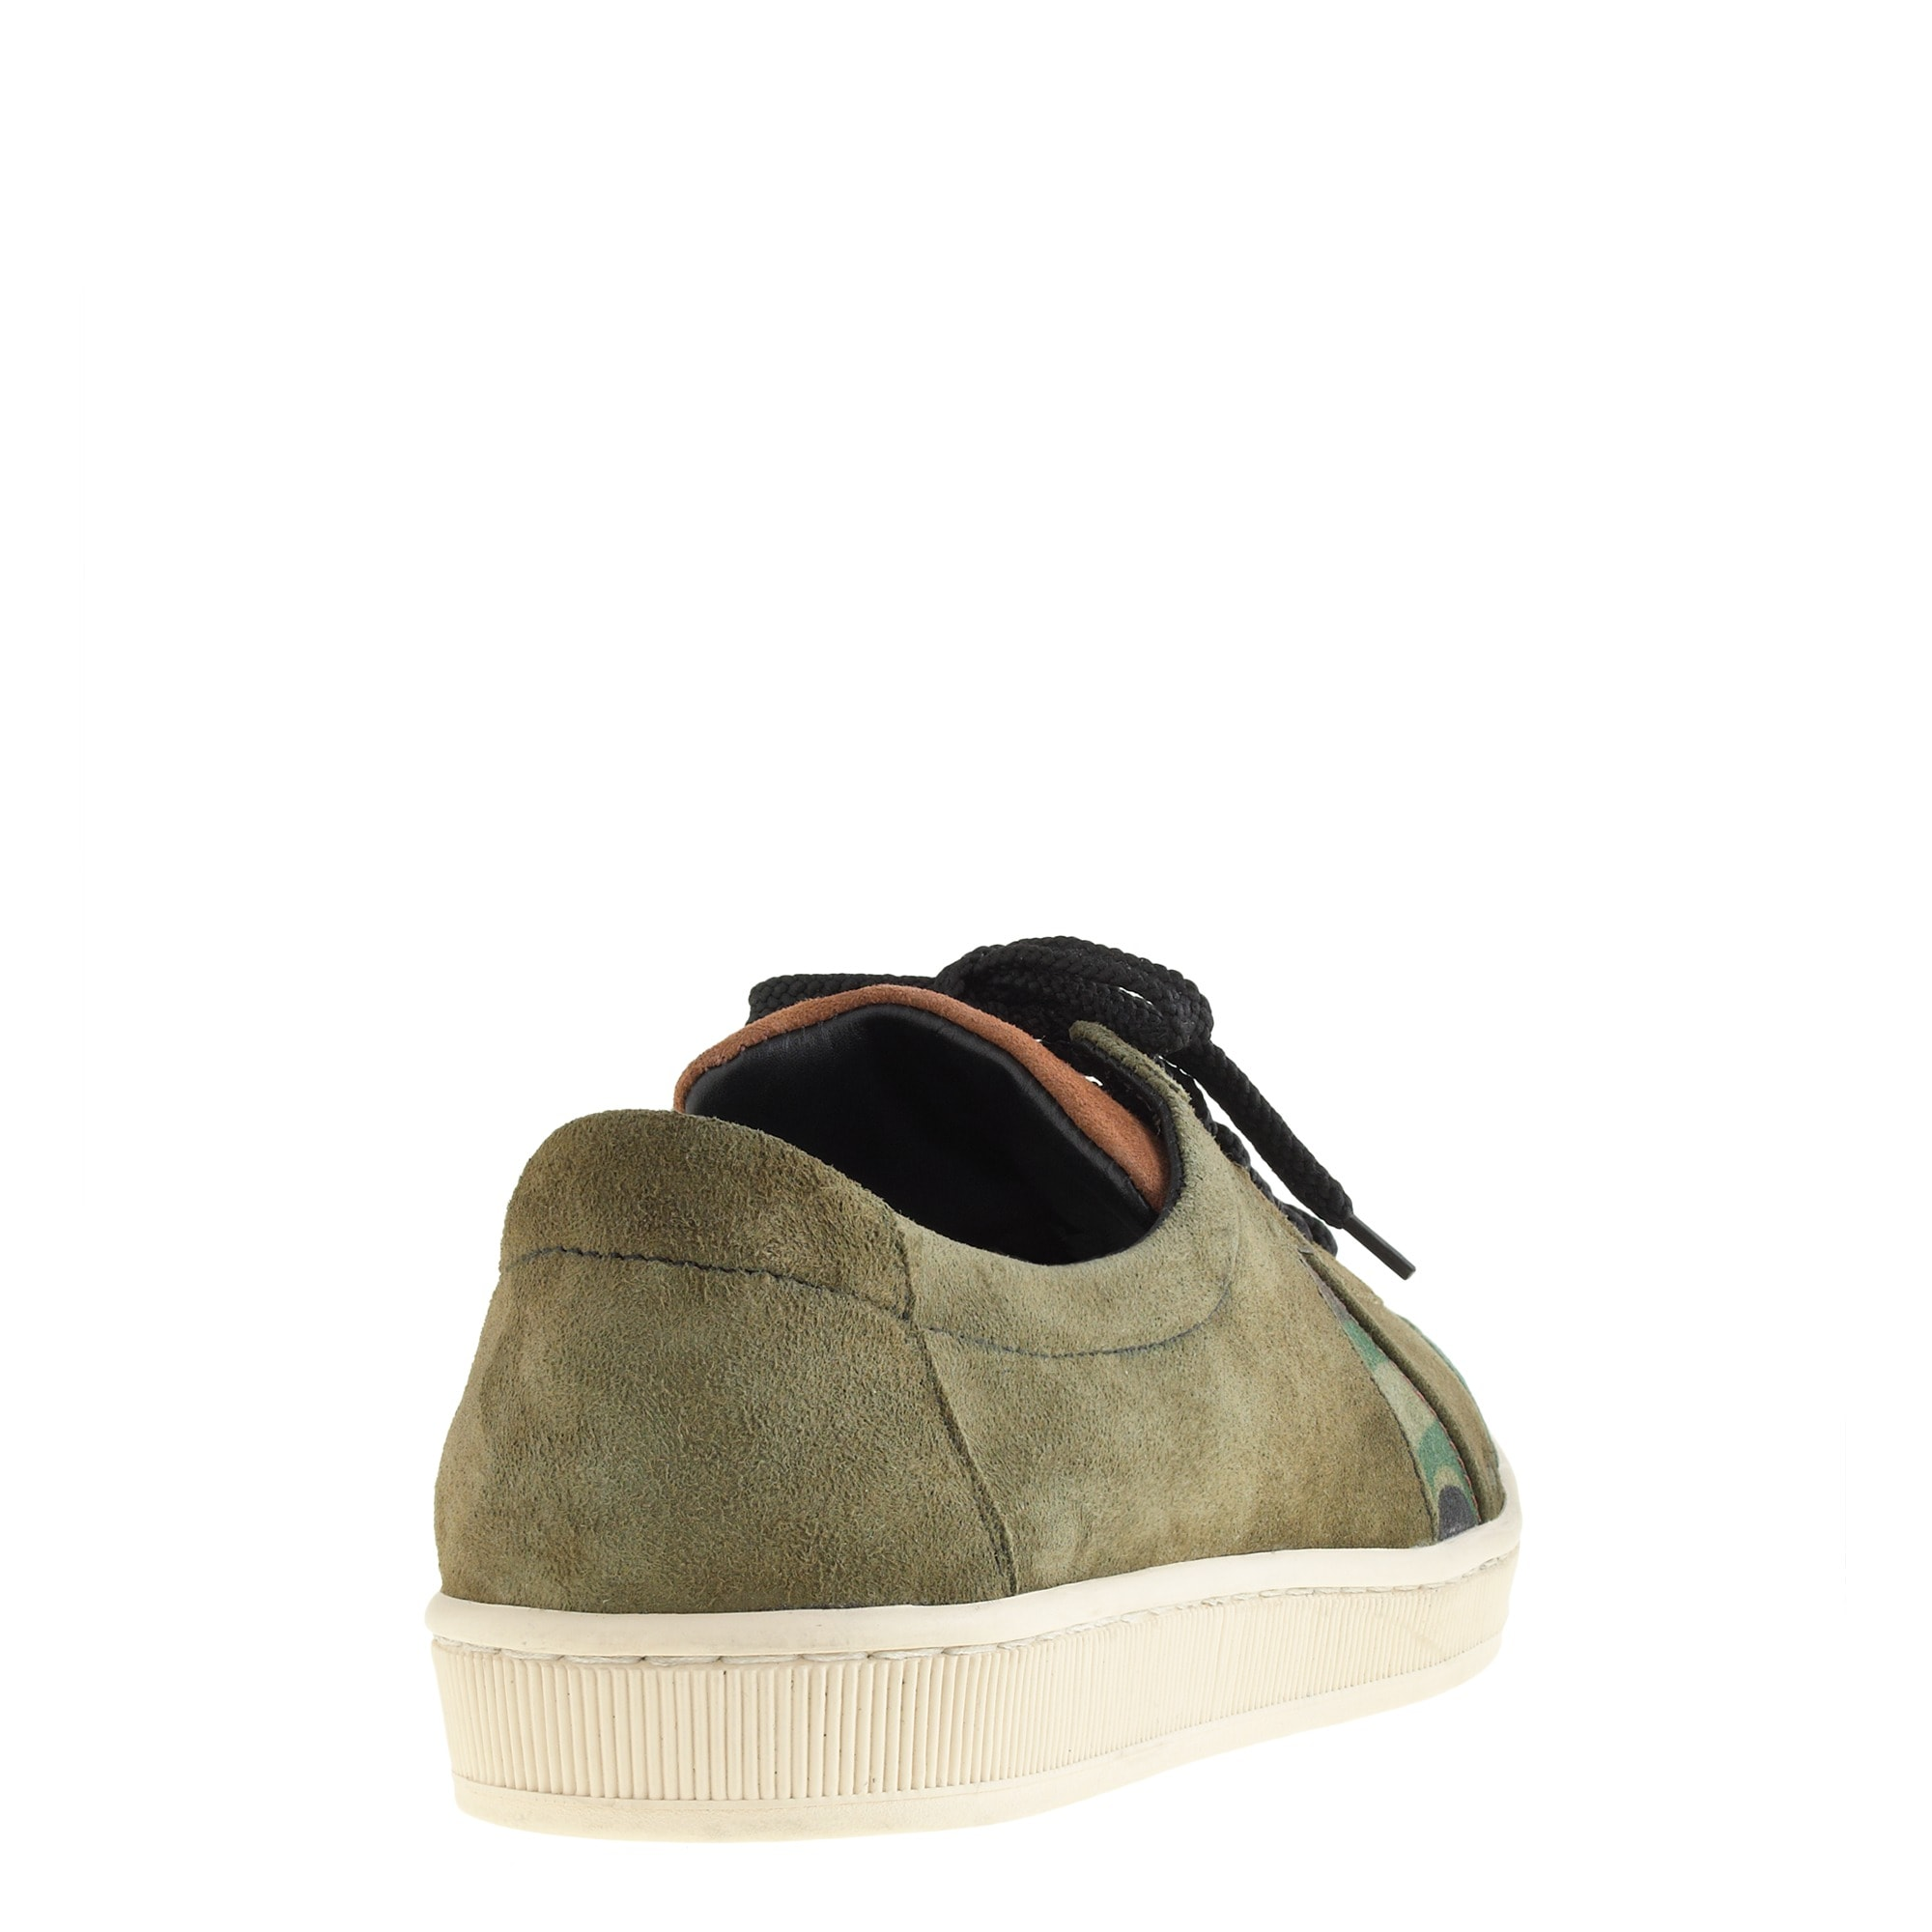 Men's Sawa™ for J.Crew Dr. Bess sneakers in camo suede